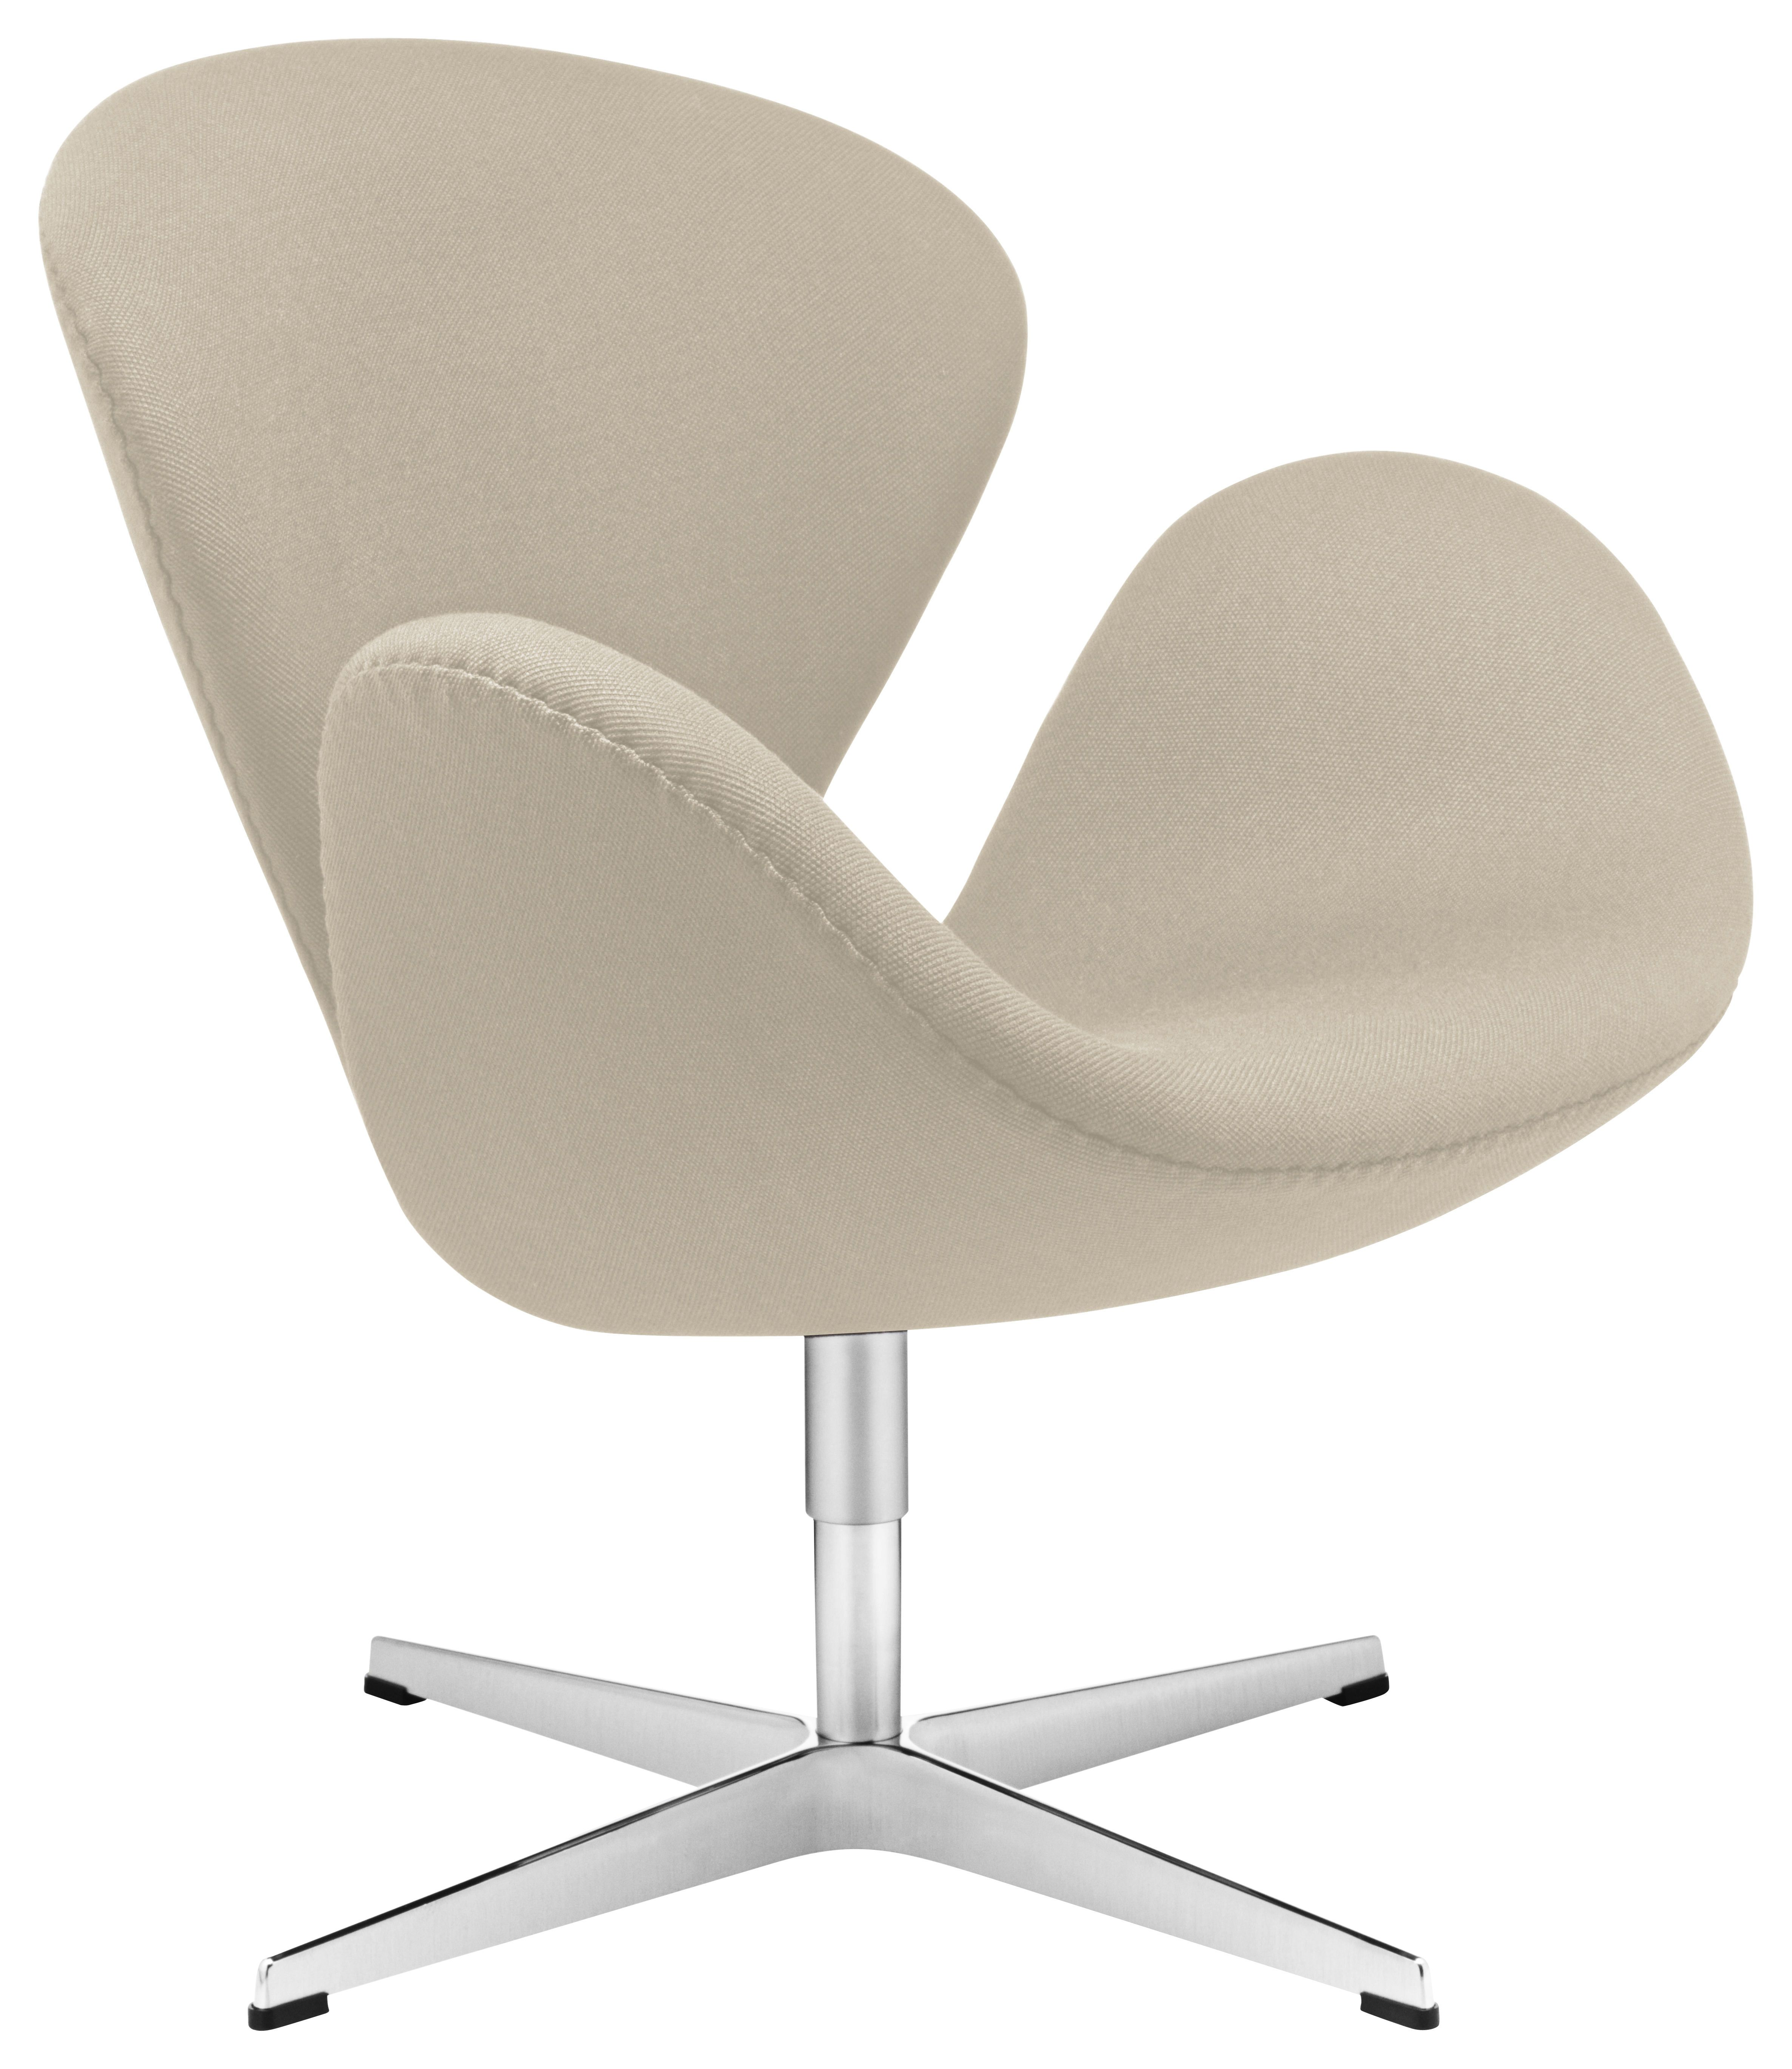 Swan Chair Swivel Armchair Fabric Version Fir Green By Fritz Hansen Design Furniture And Decoration With Made In